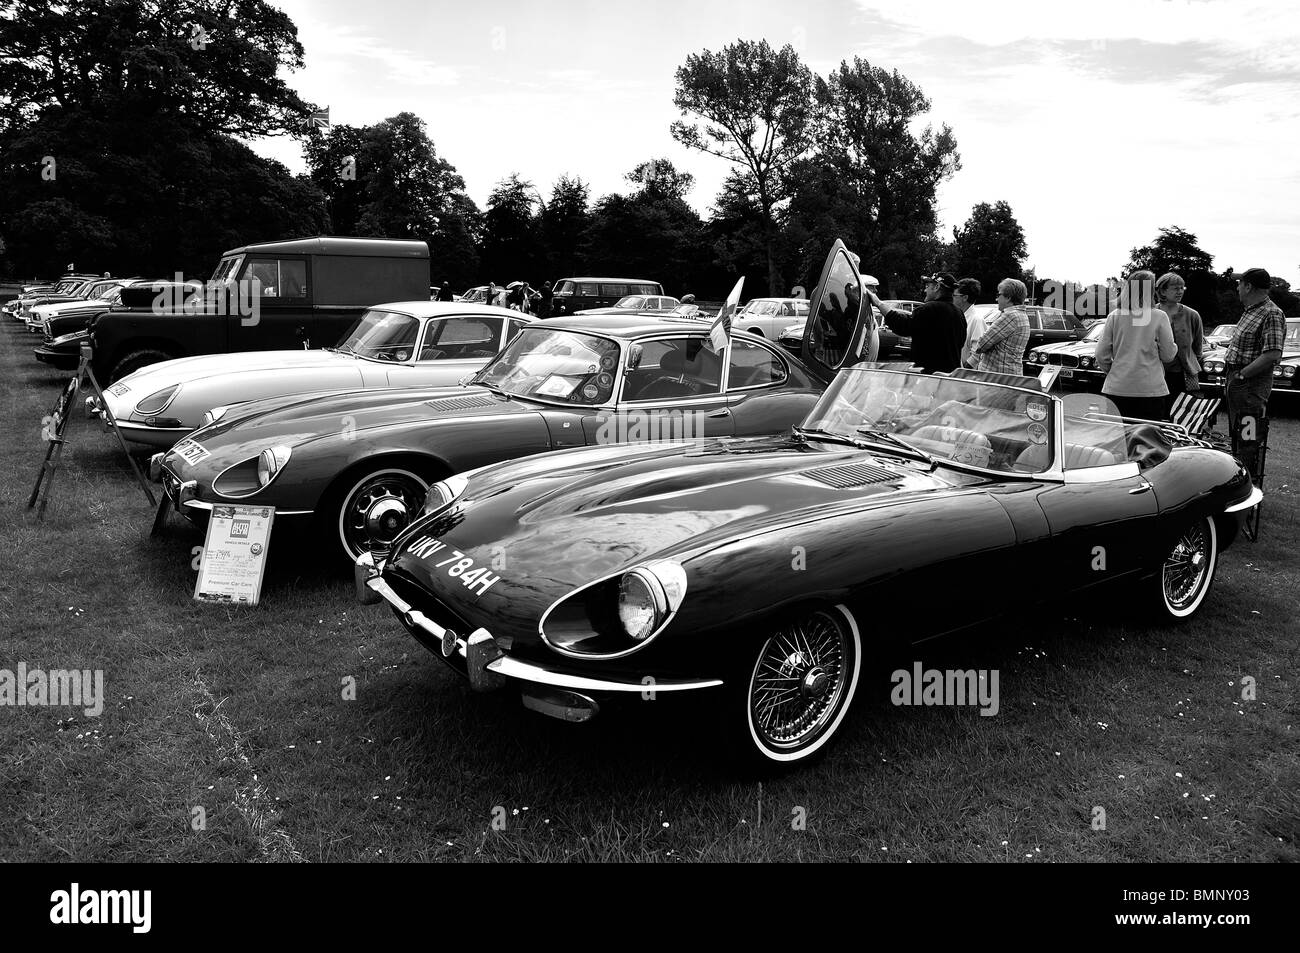 Jaguar E-type cars at Classic Car Show in Luton 2010 - Stock Image